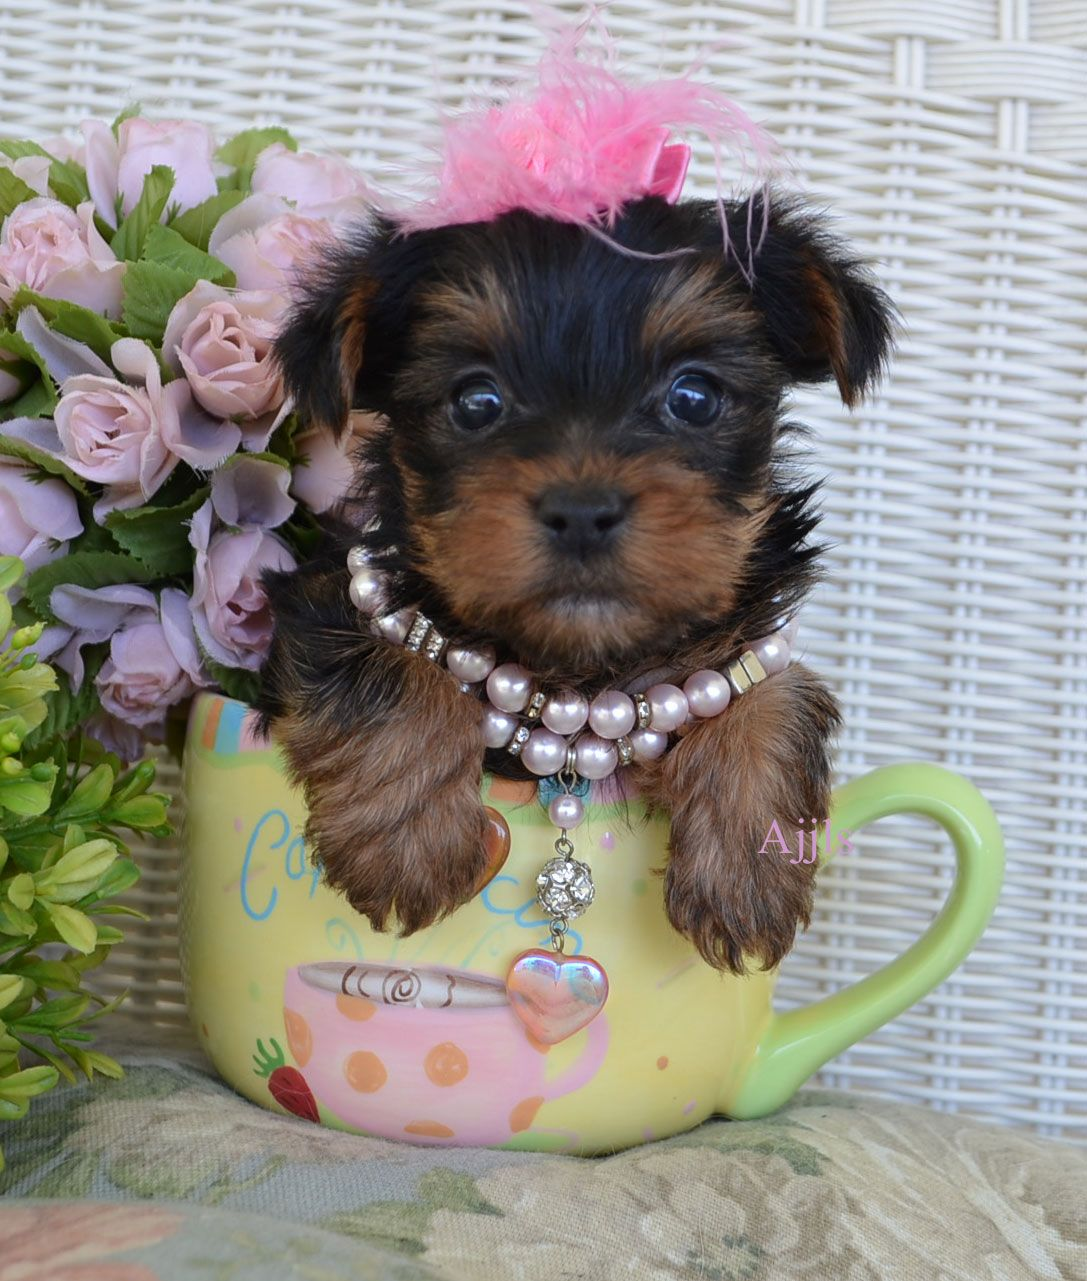 Teacup Yorkie Puppies For Sale Yorkie puppy for sale